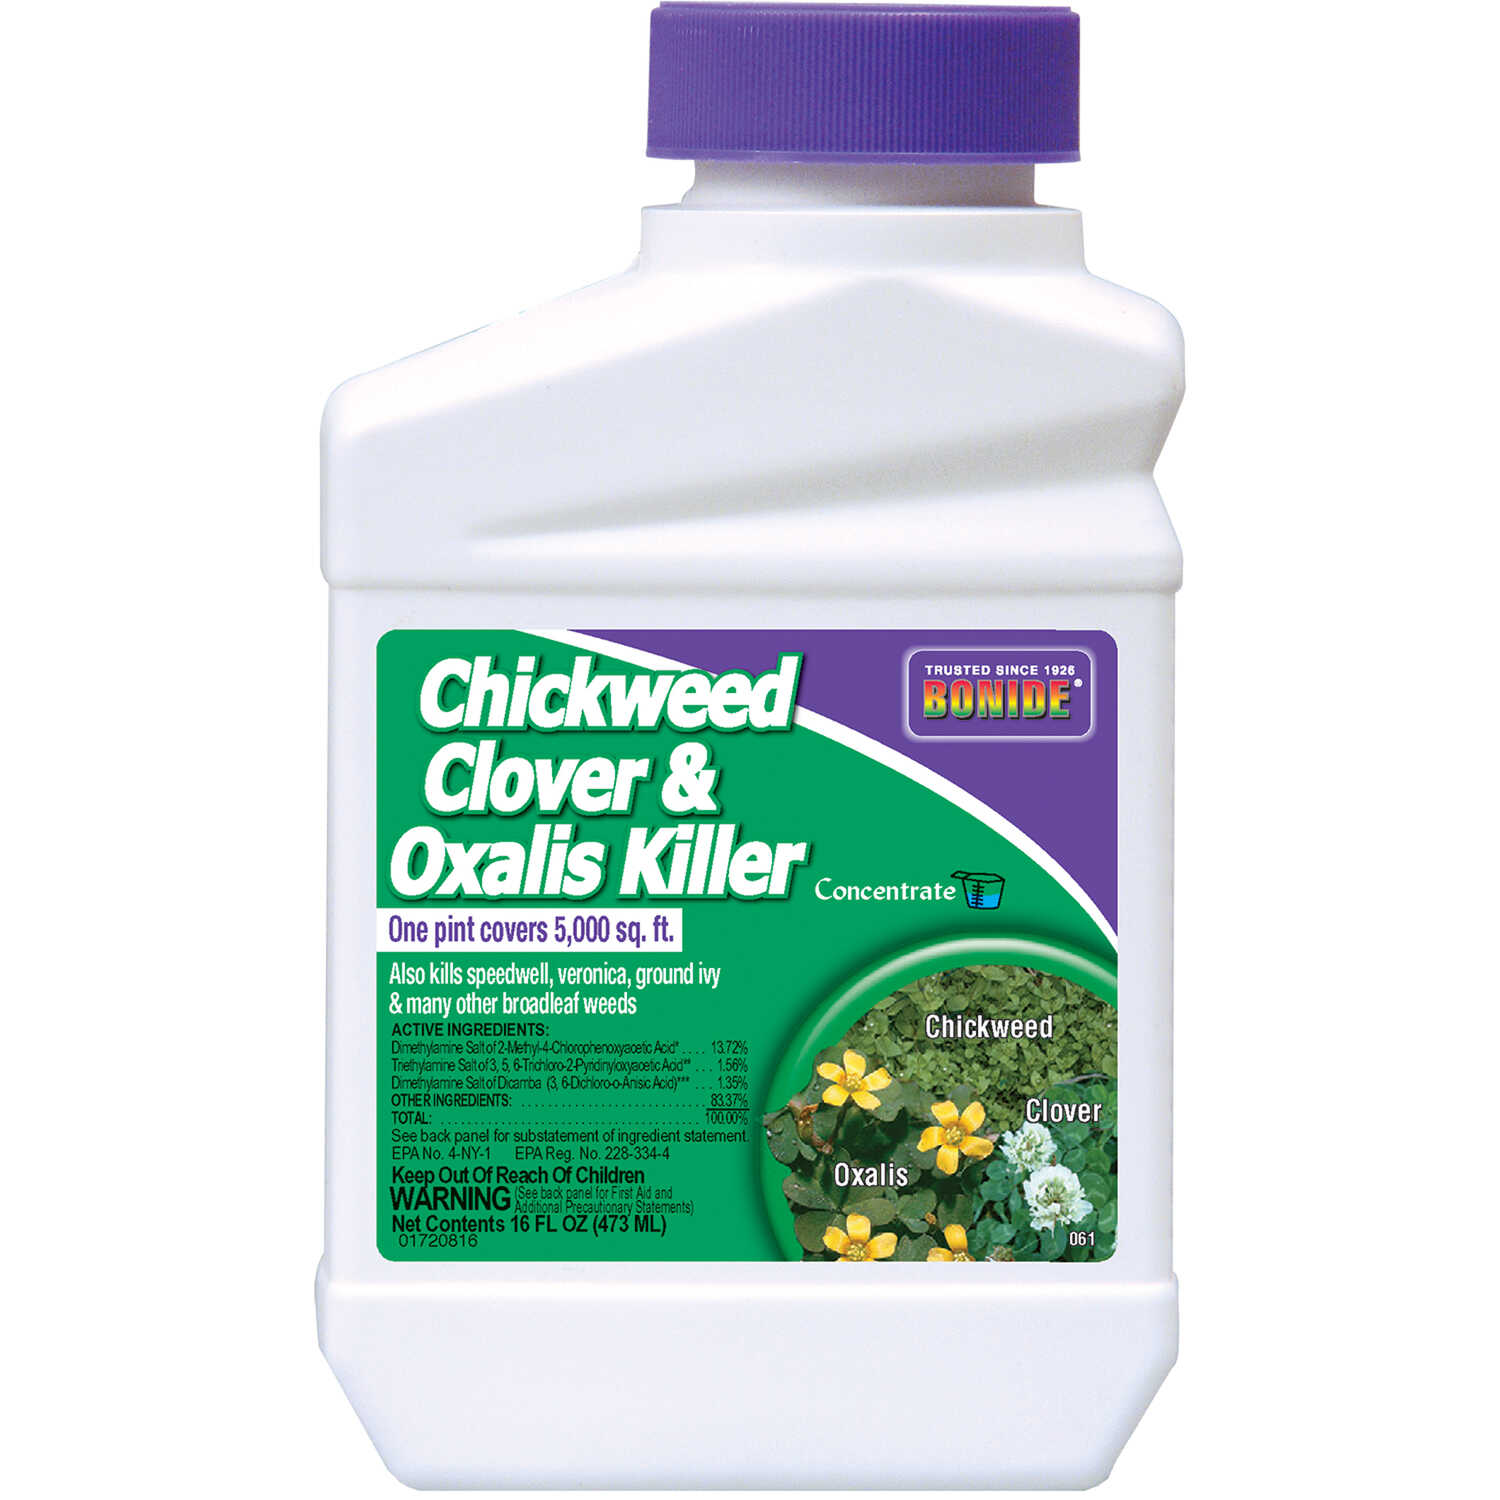 Bonide  Chickweed, Clover and Oxalis Killer  Concentrate  1 pt.